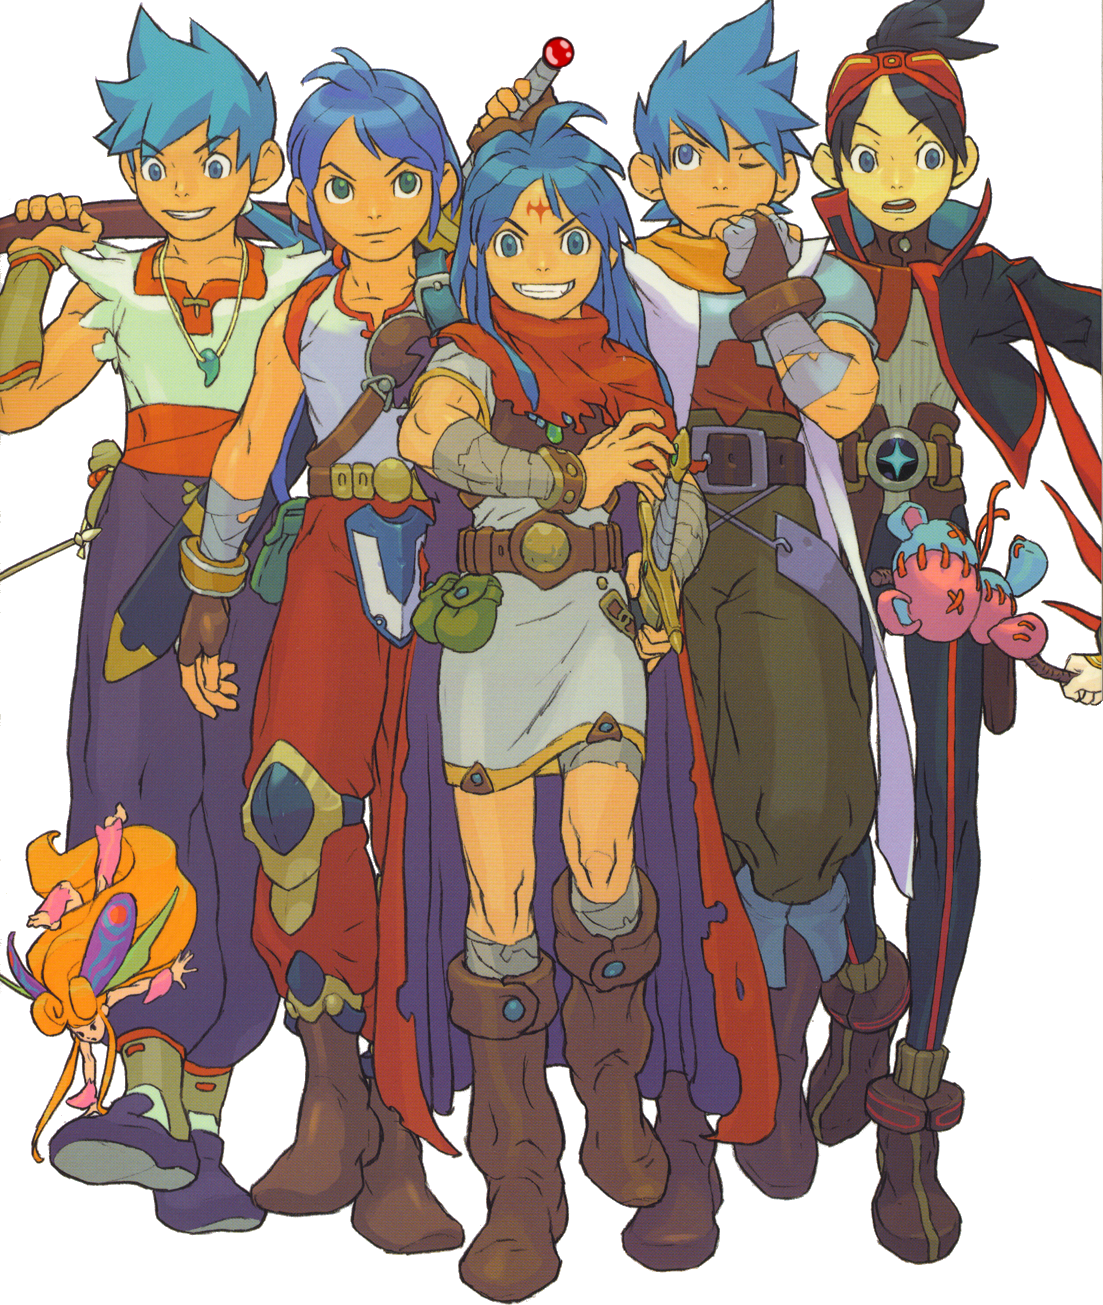 Previous Breath of Fire Ryus